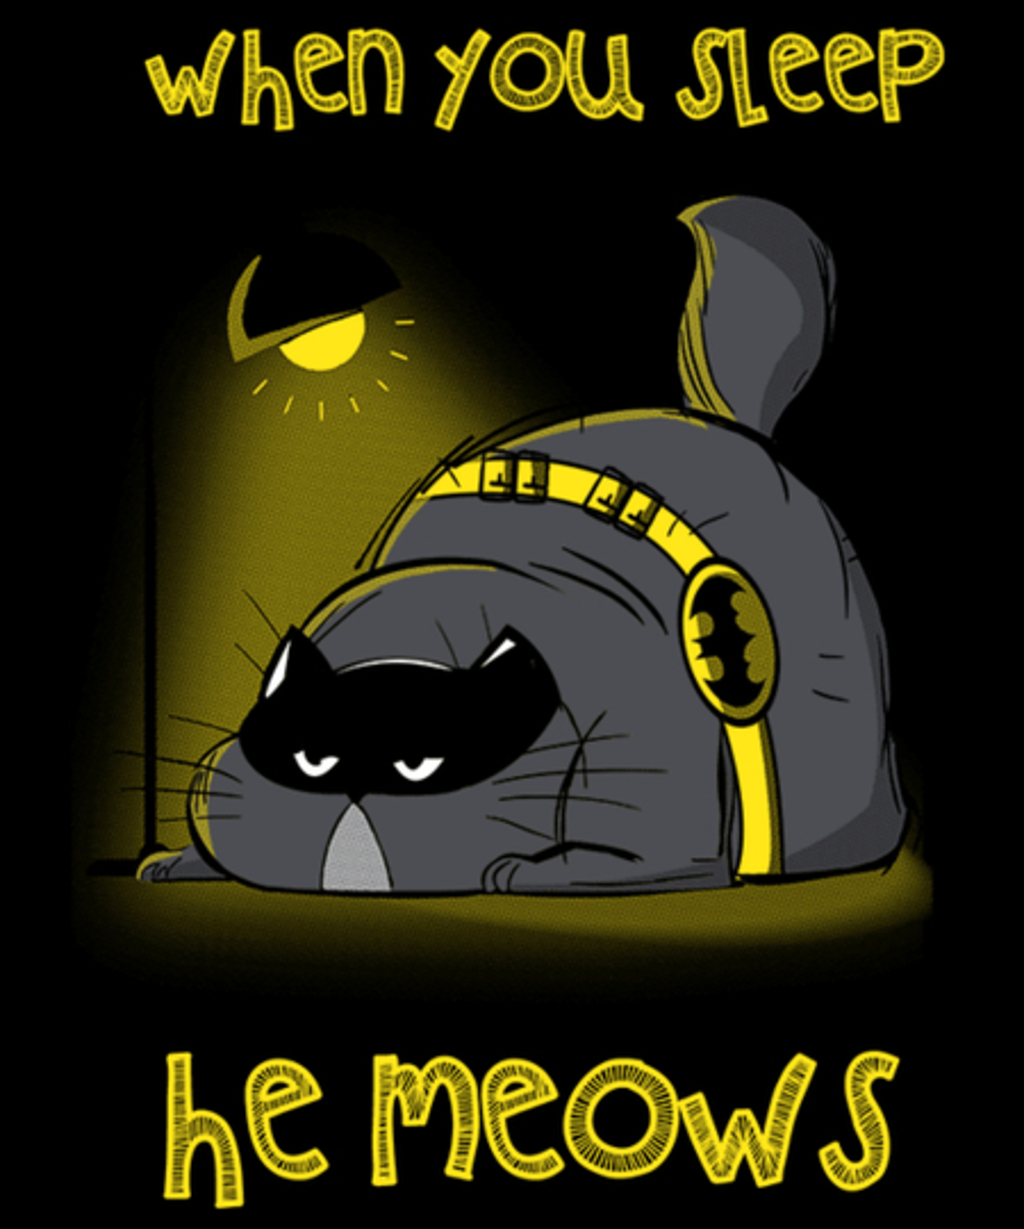 Qwertee: The Batcat